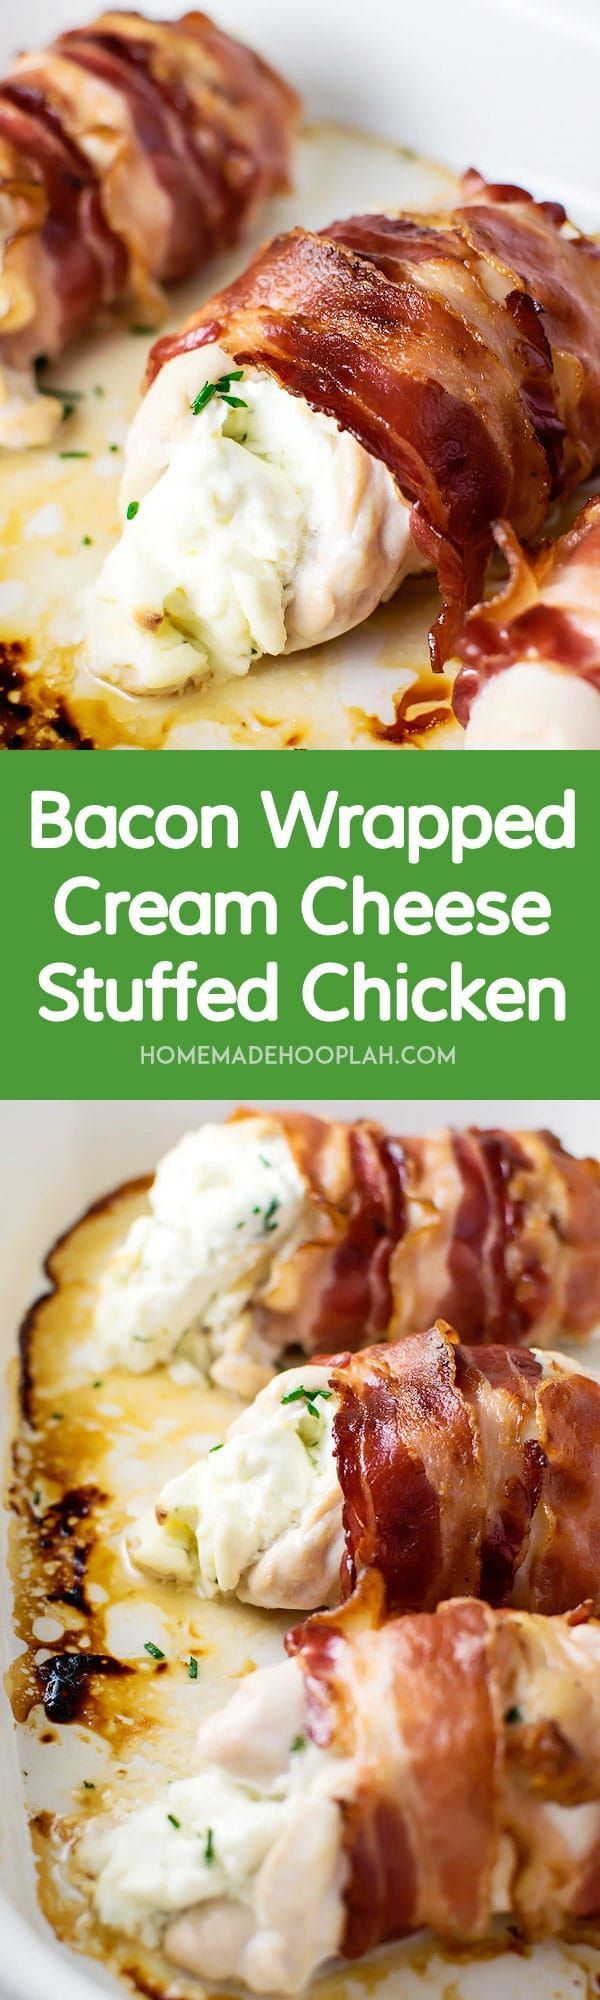 Bacon Wrapped Cream Cheese Stuffed Chicken! A base recipe for tender chicken breast stuffed with cream cheese and chives wrapped tightly within crispy bacon. Make it as written or add more flavors! | http://HomemadeHooplah.com